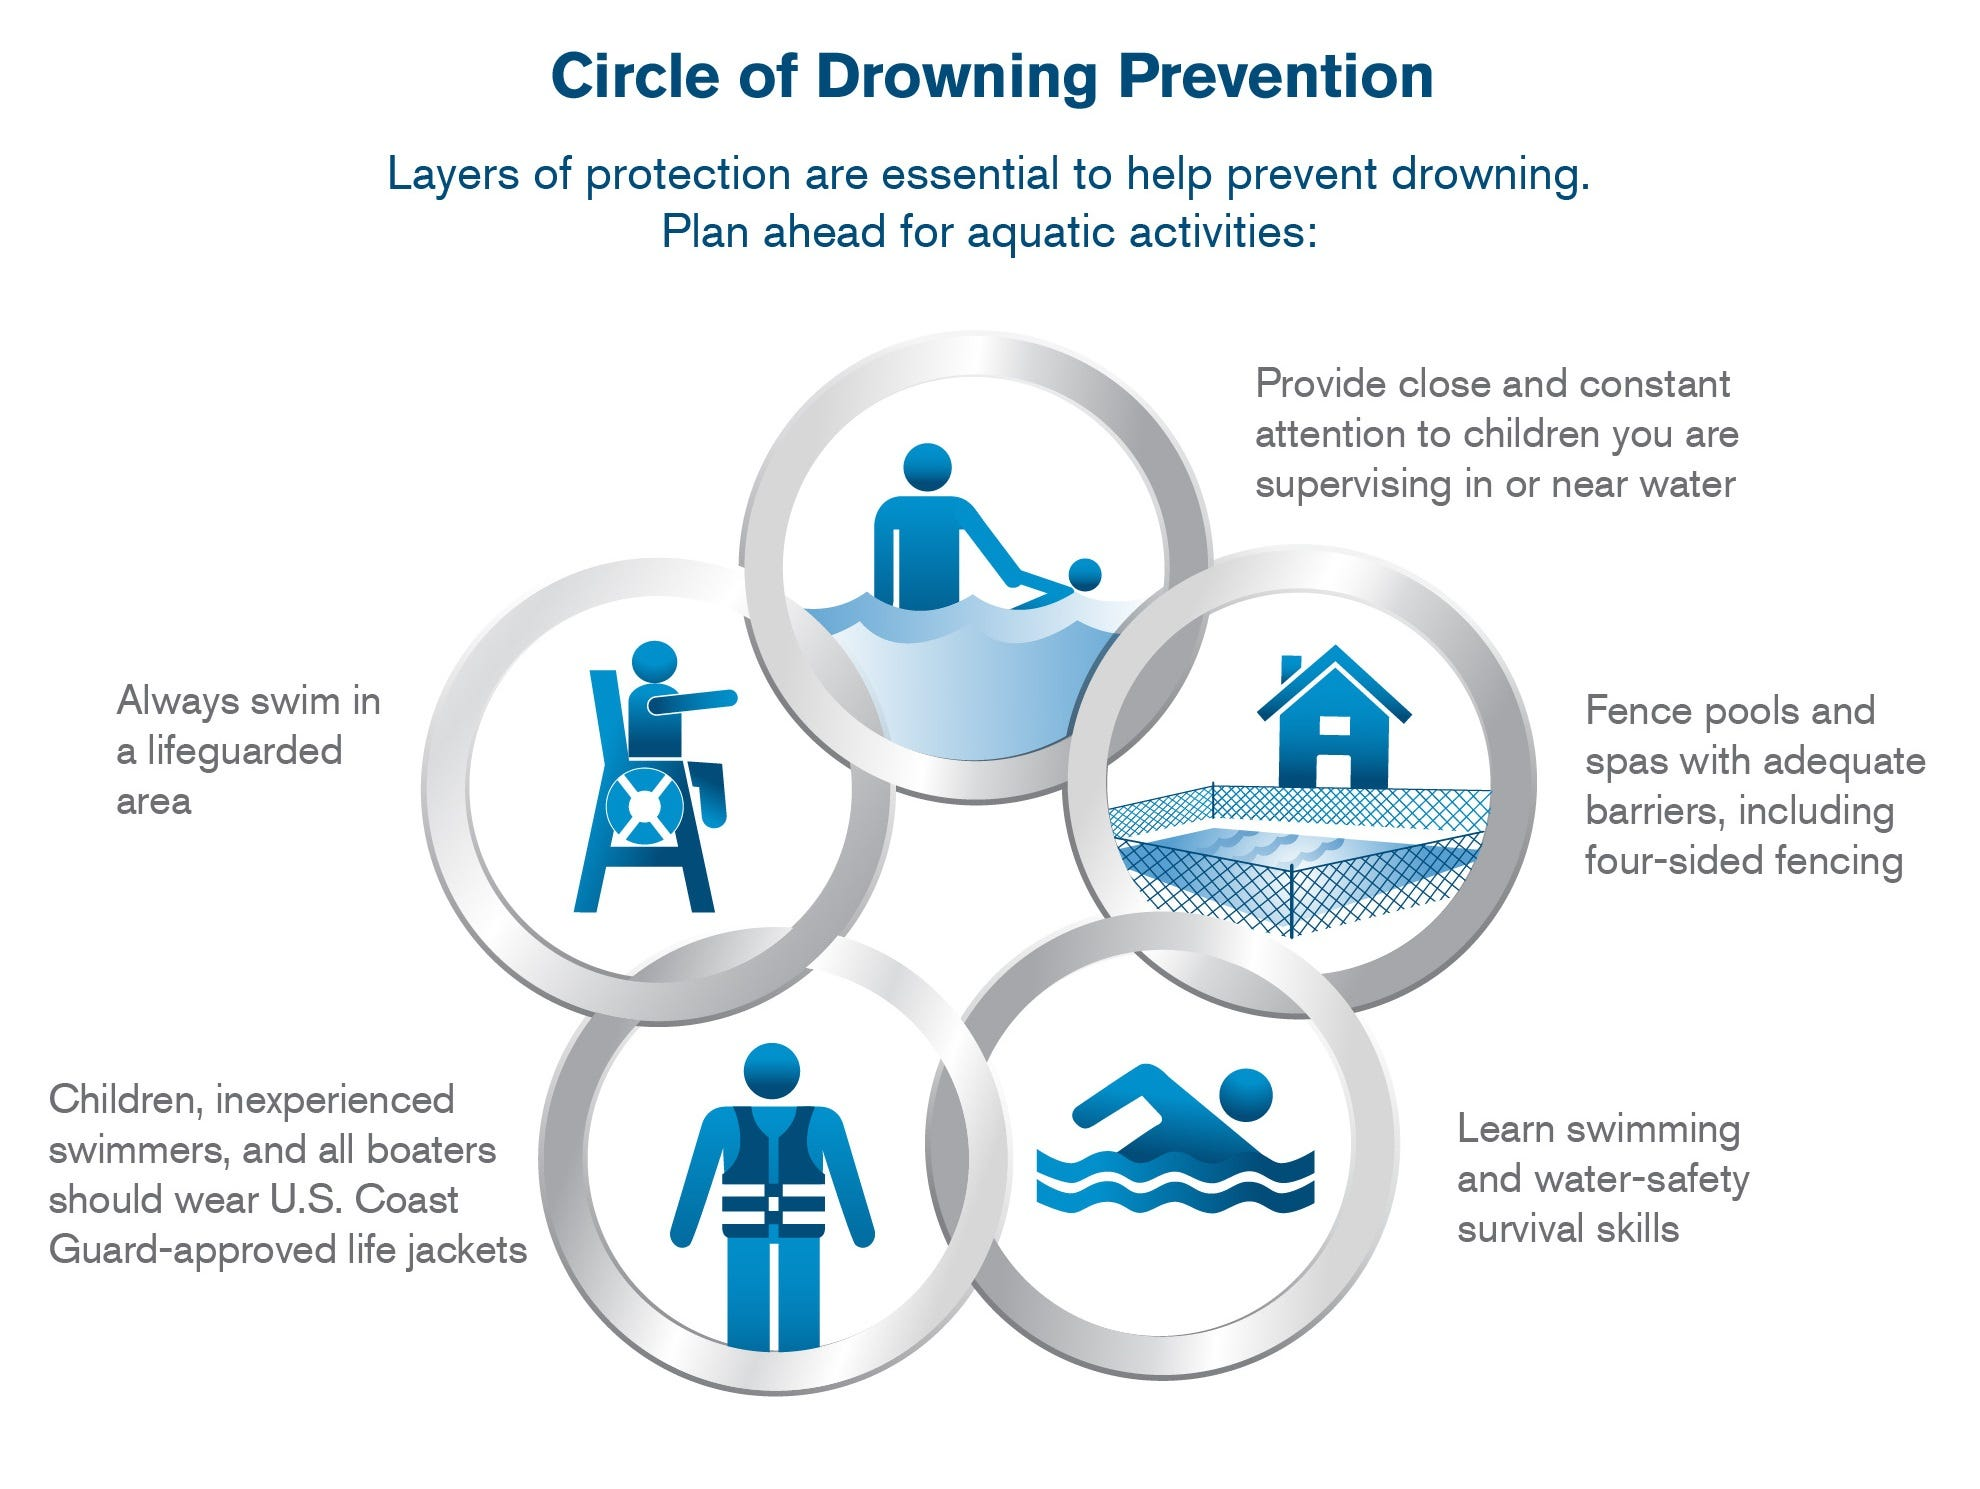 Tips from the American Red Cross on preventing drowning.